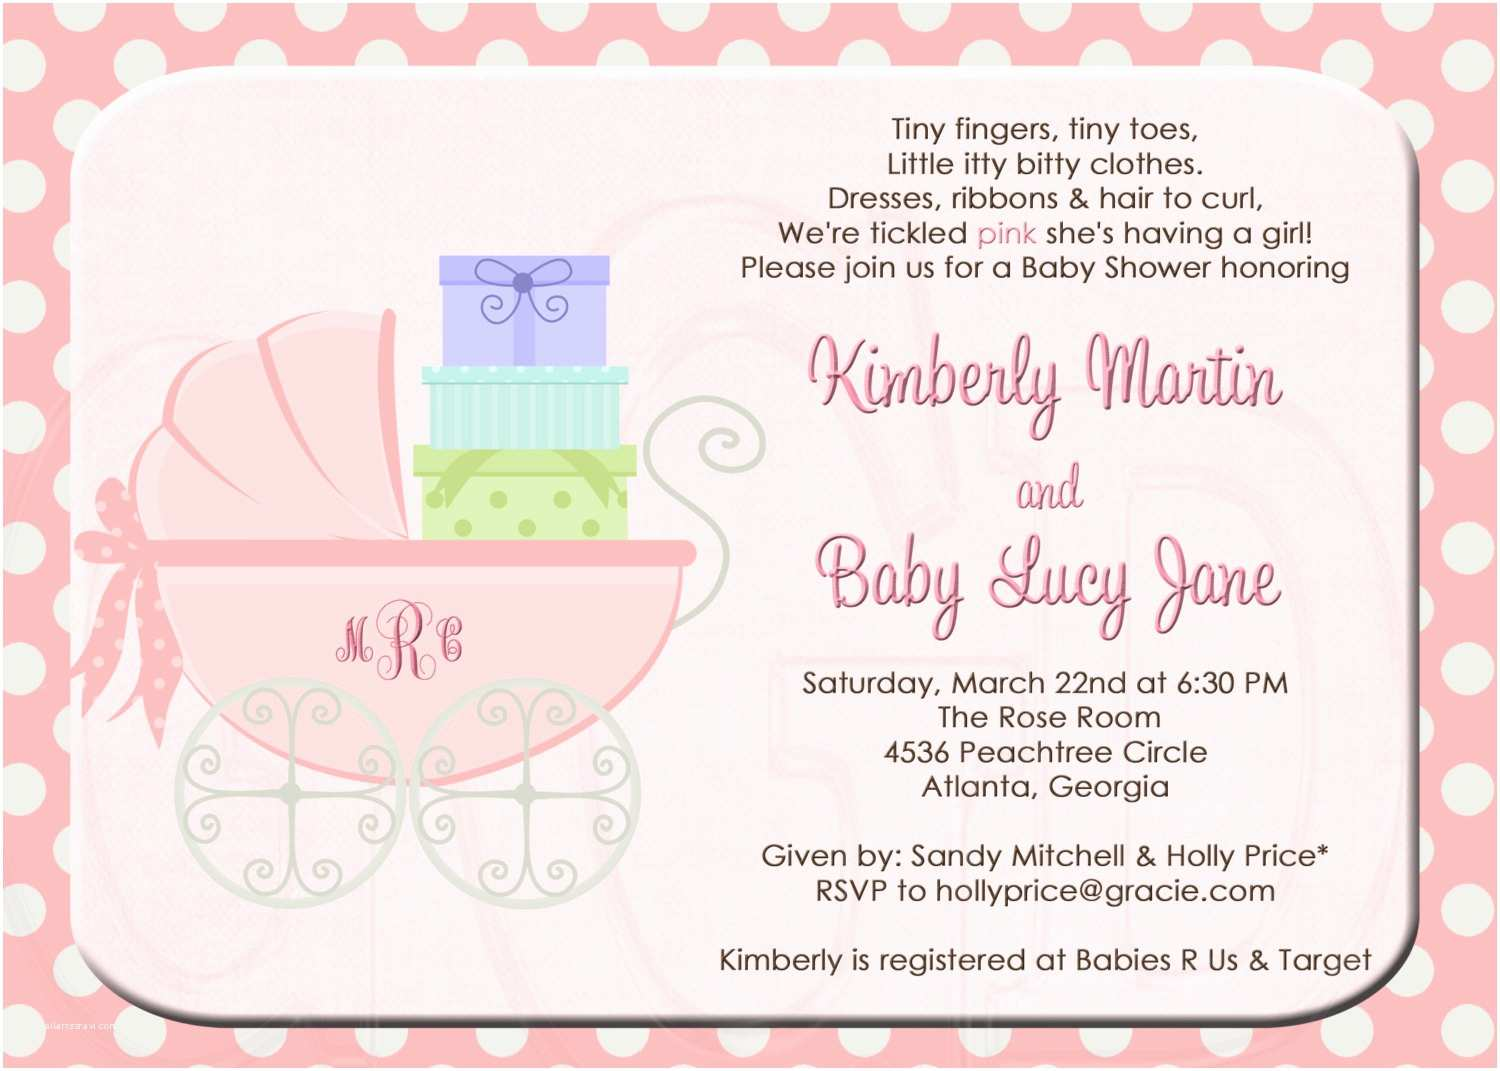 Baby Shower Invitations Templates Sample Baby Shower Invitations Wording